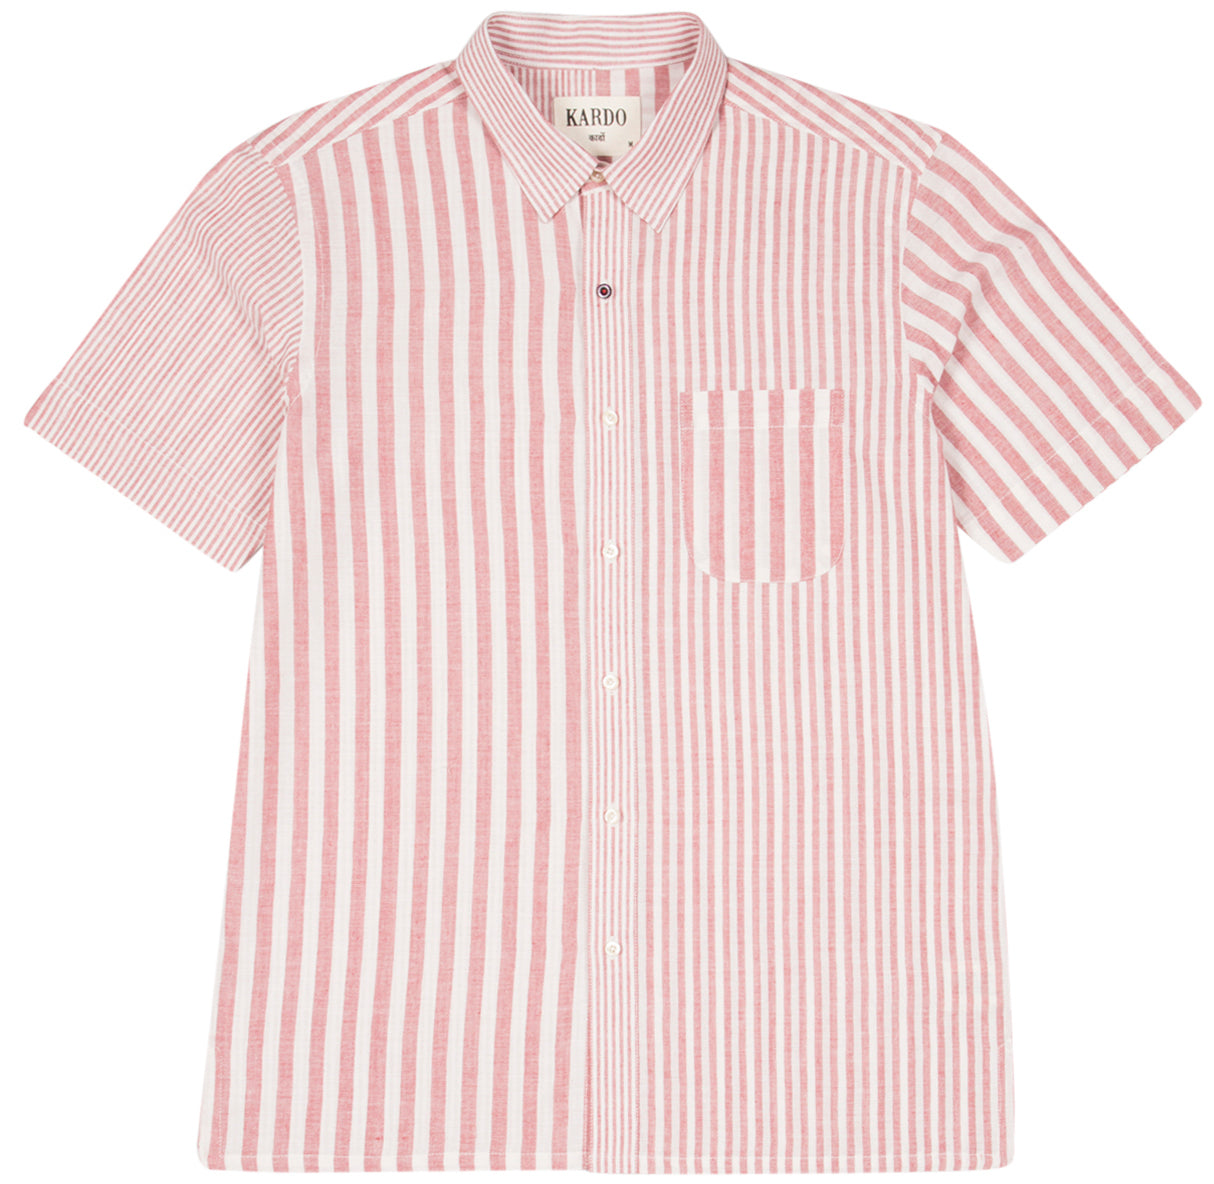 Franklin Vertical Stripe Shirt S/S: Pink